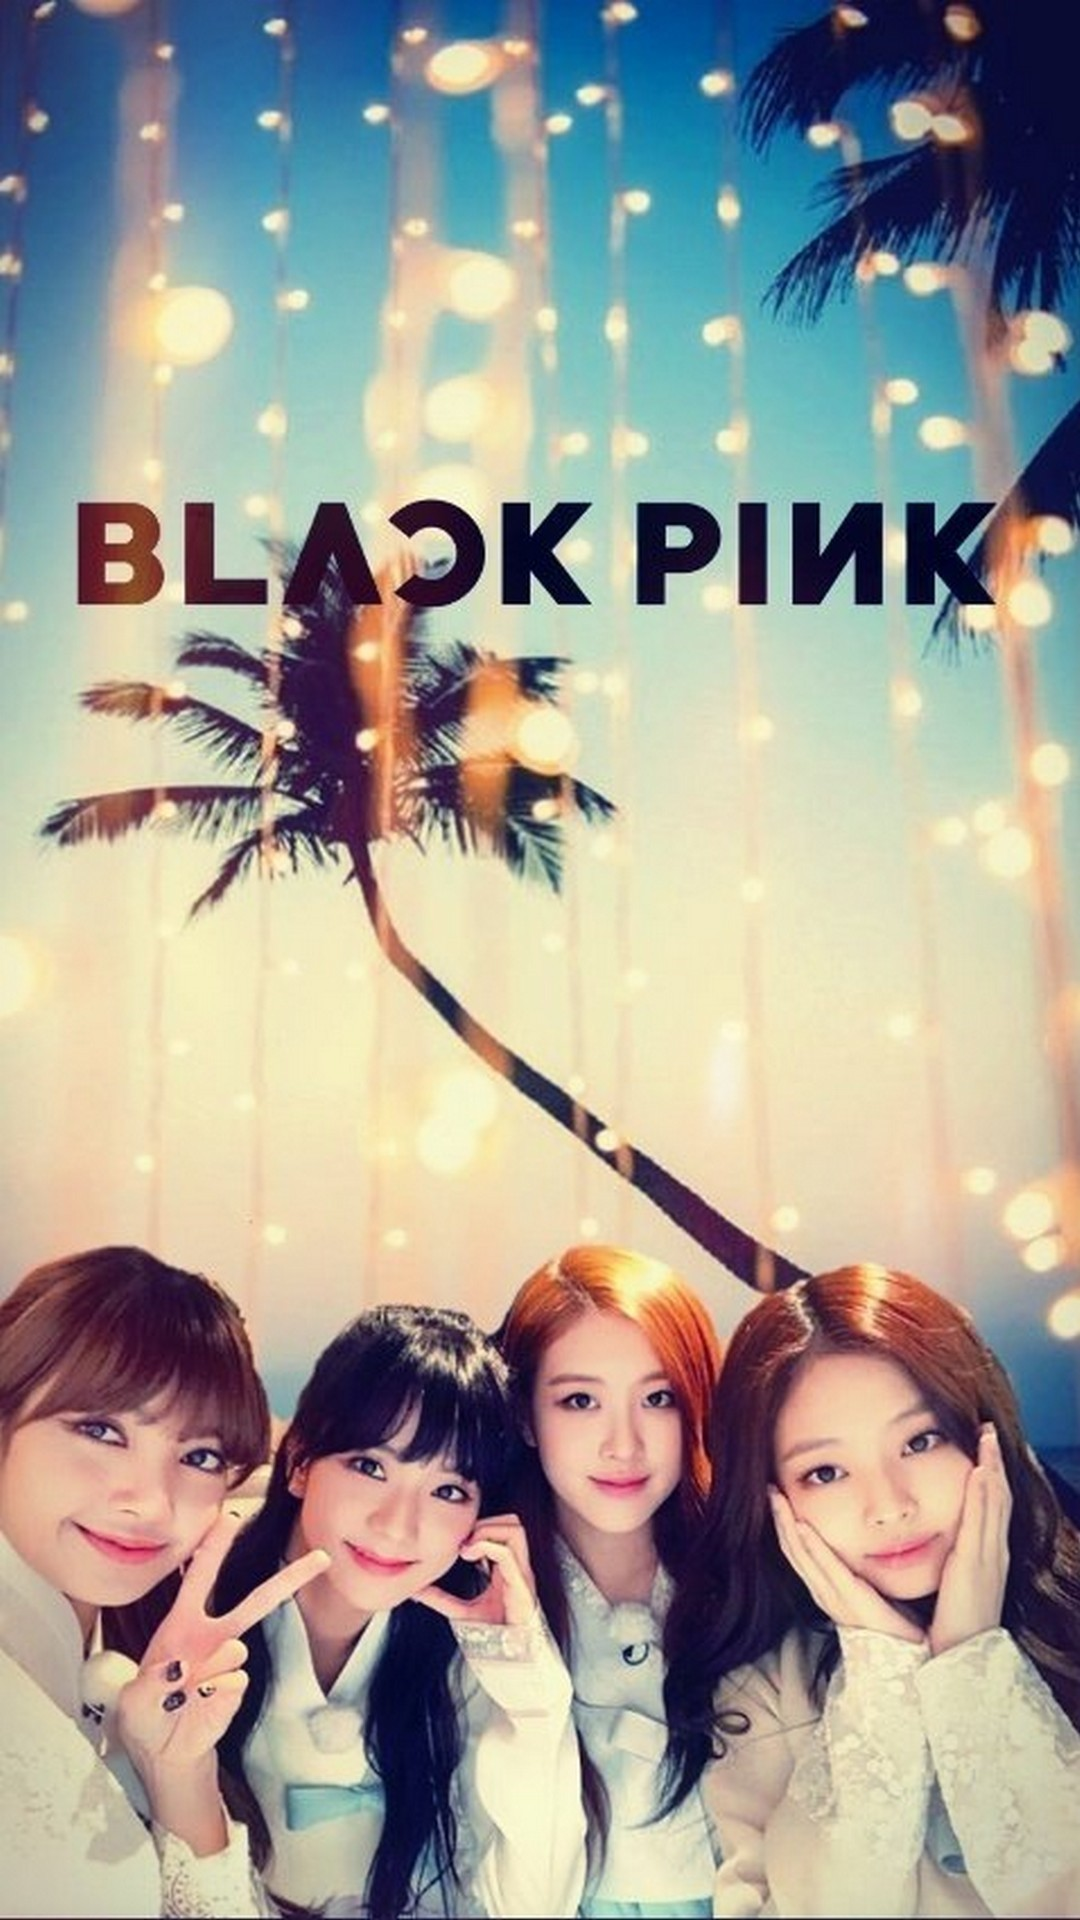 Blackpink Iphone Wallpapers 20 Images Wallpaperboat